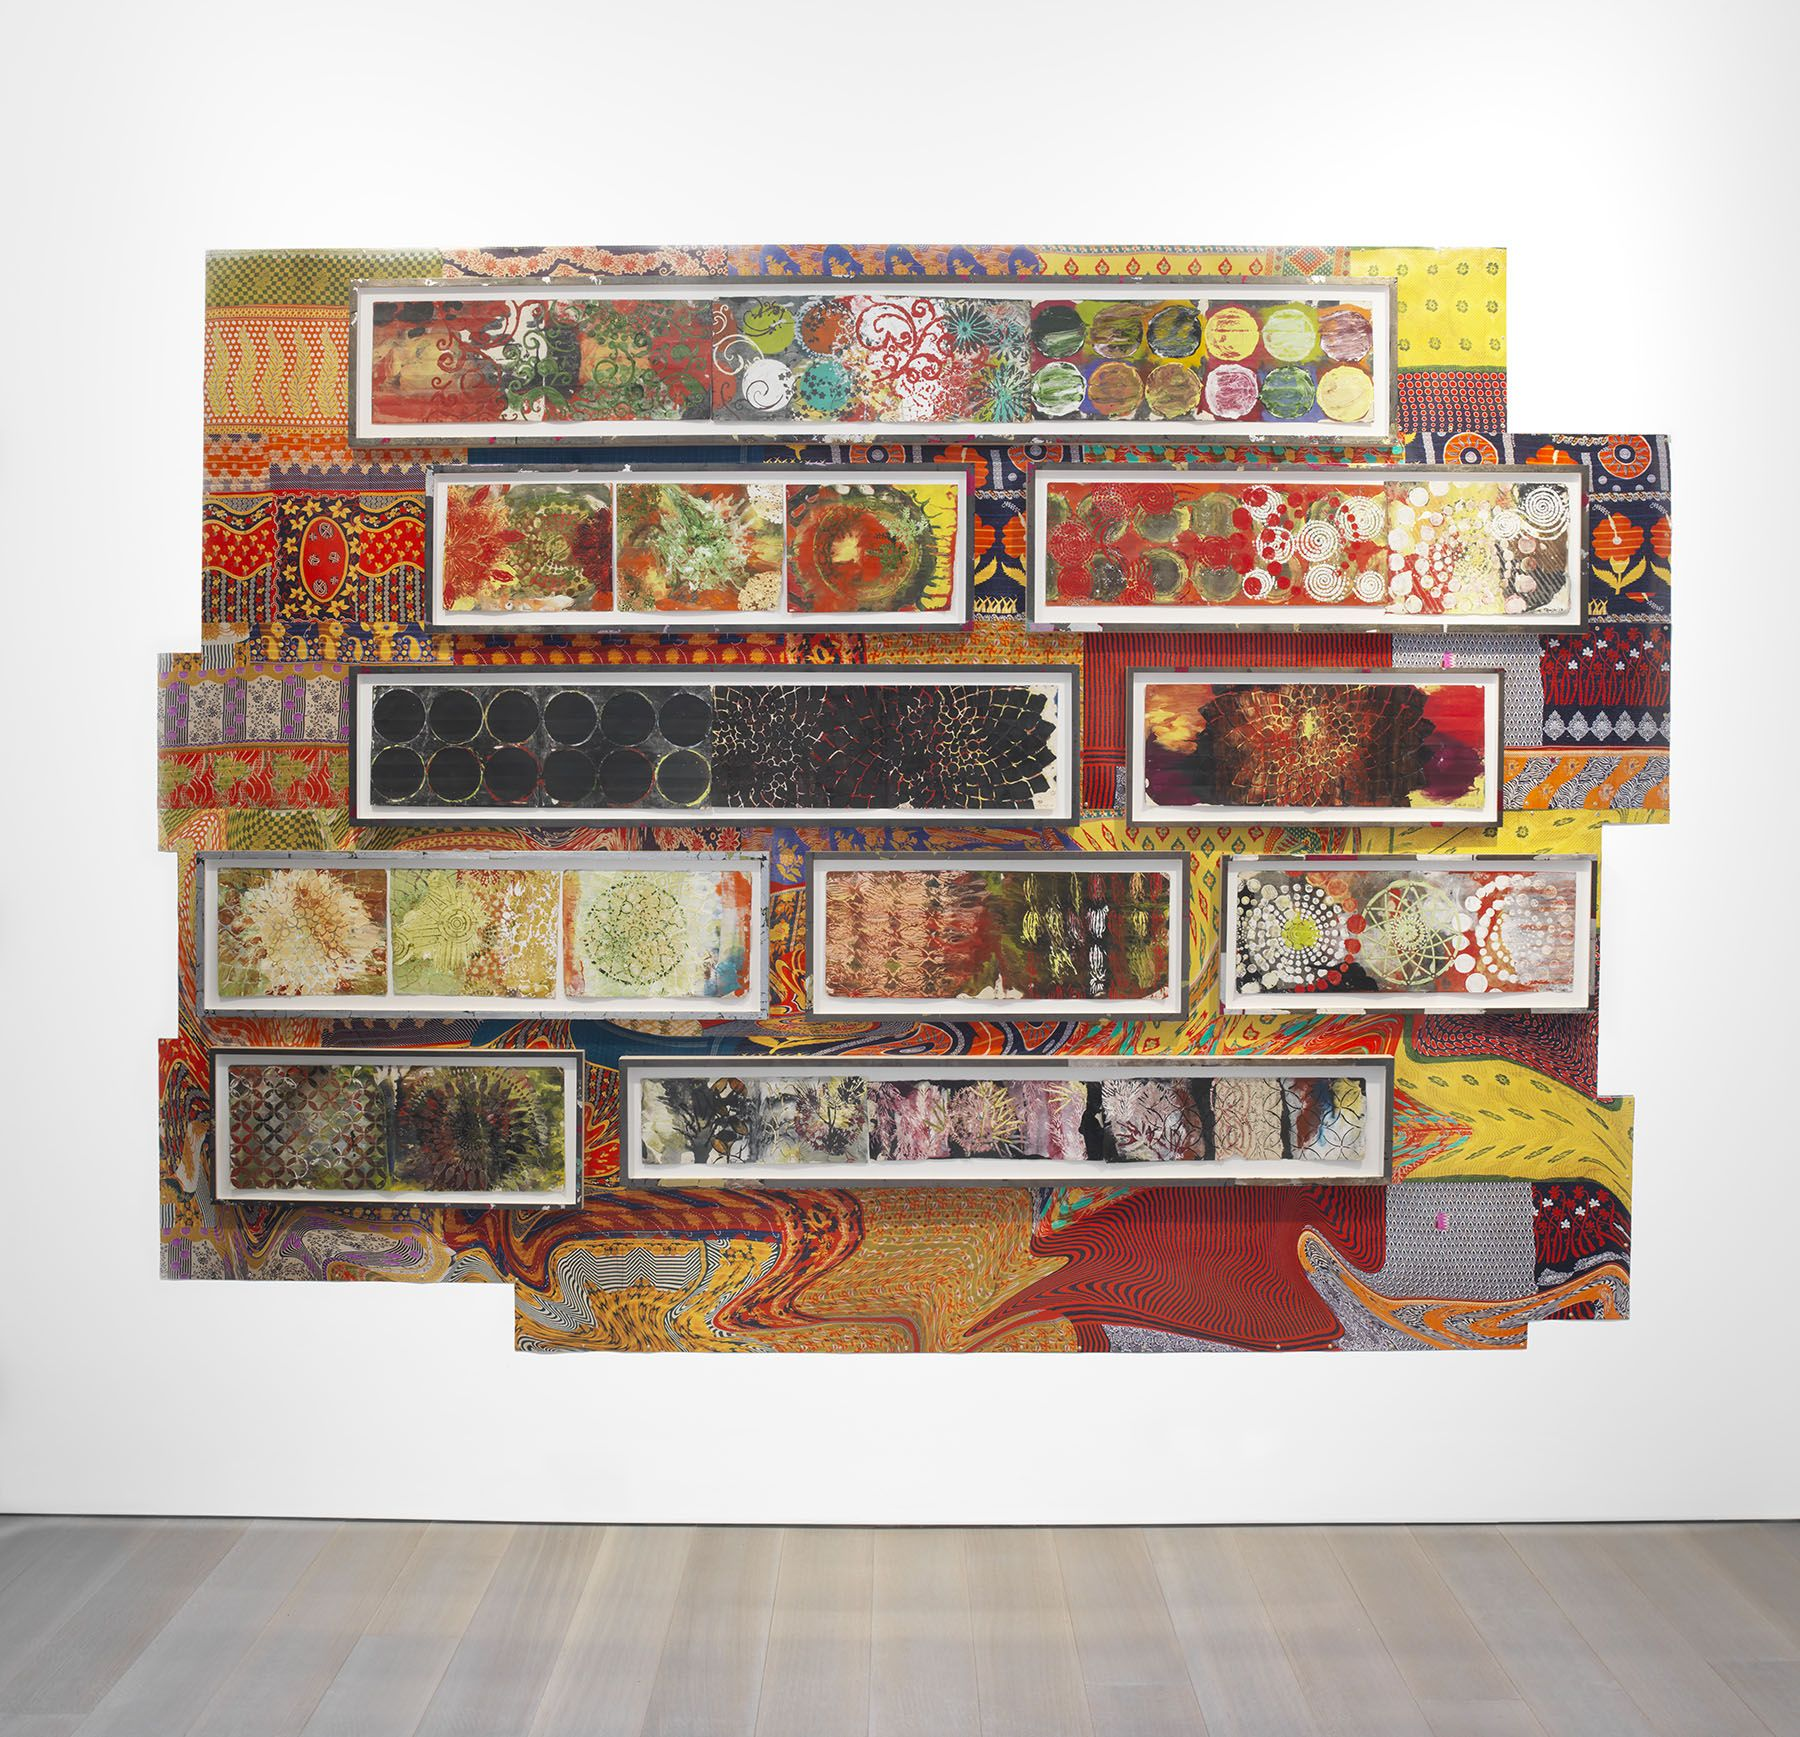 Judy Pfaff, Wall Install - Year of the Rat, 2018, Oil stick, encaustic, vintage indian paper, 80 x 112 inches, 203.2 x 284.48 cm, MMG#29815